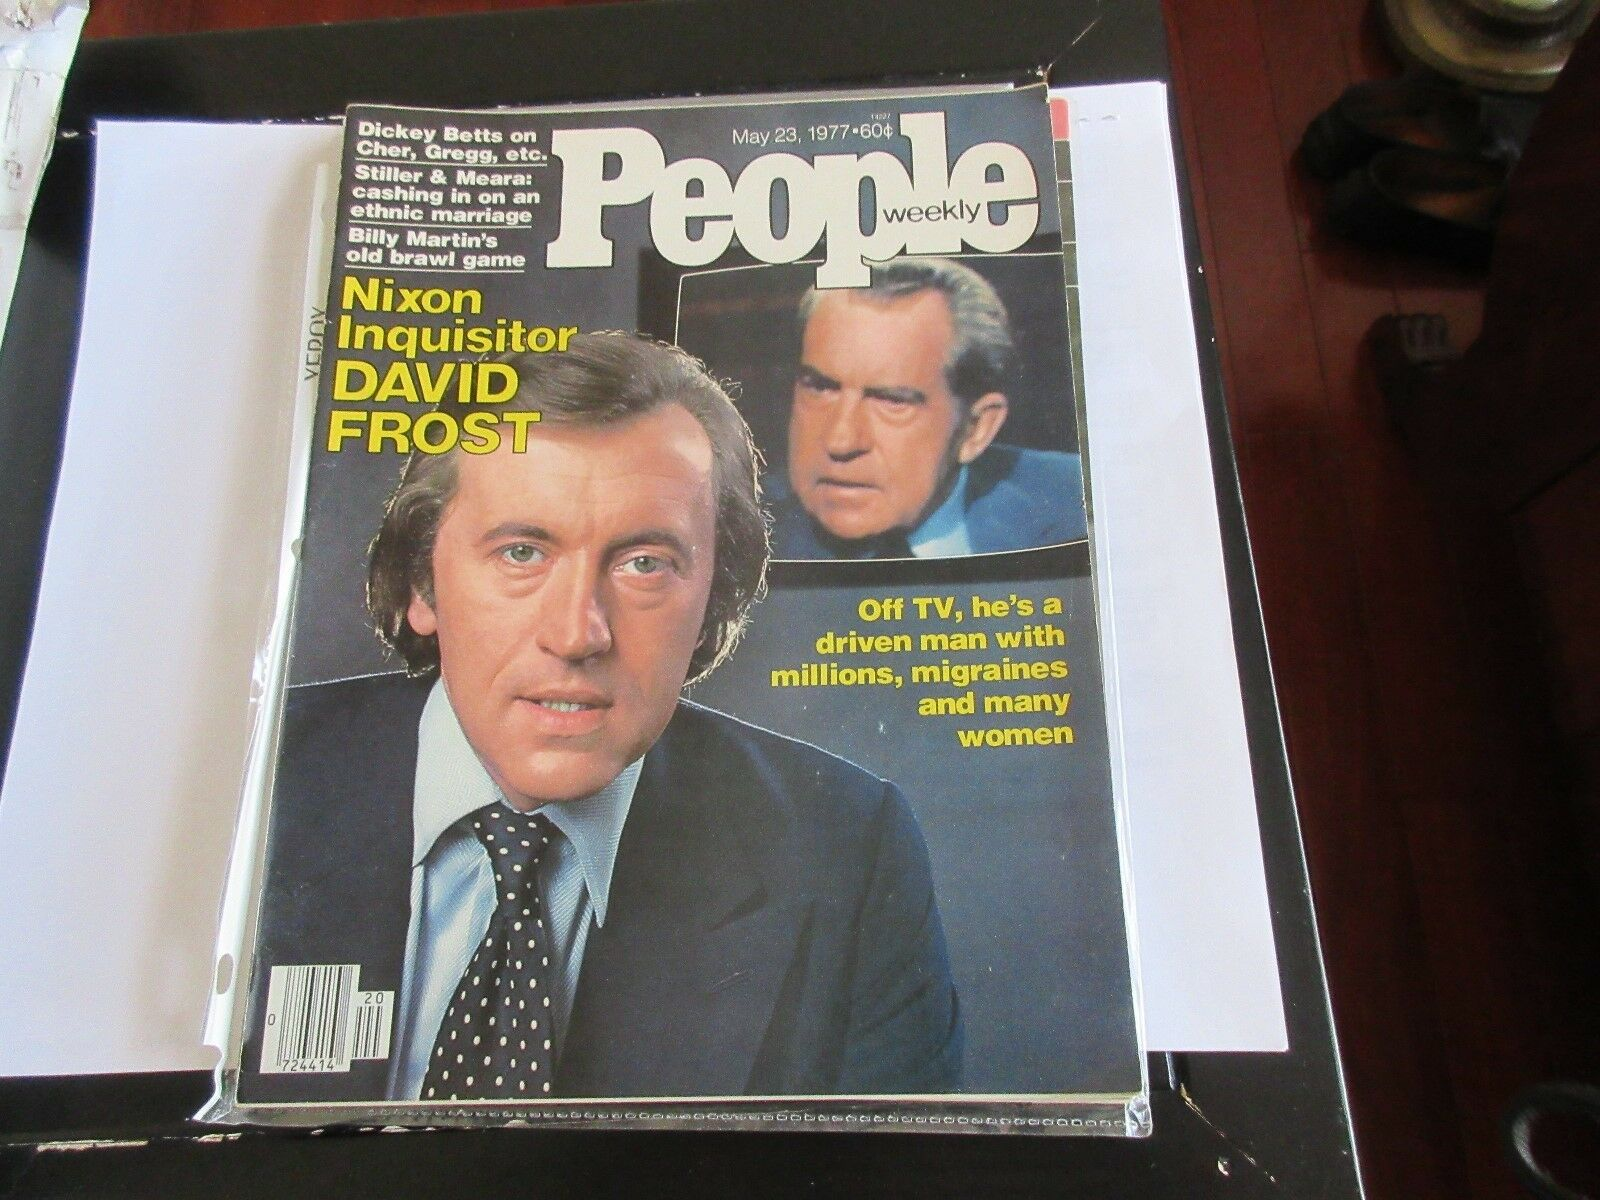 Nixon Inquisitor David Frost , People Magazine , 5/23/7